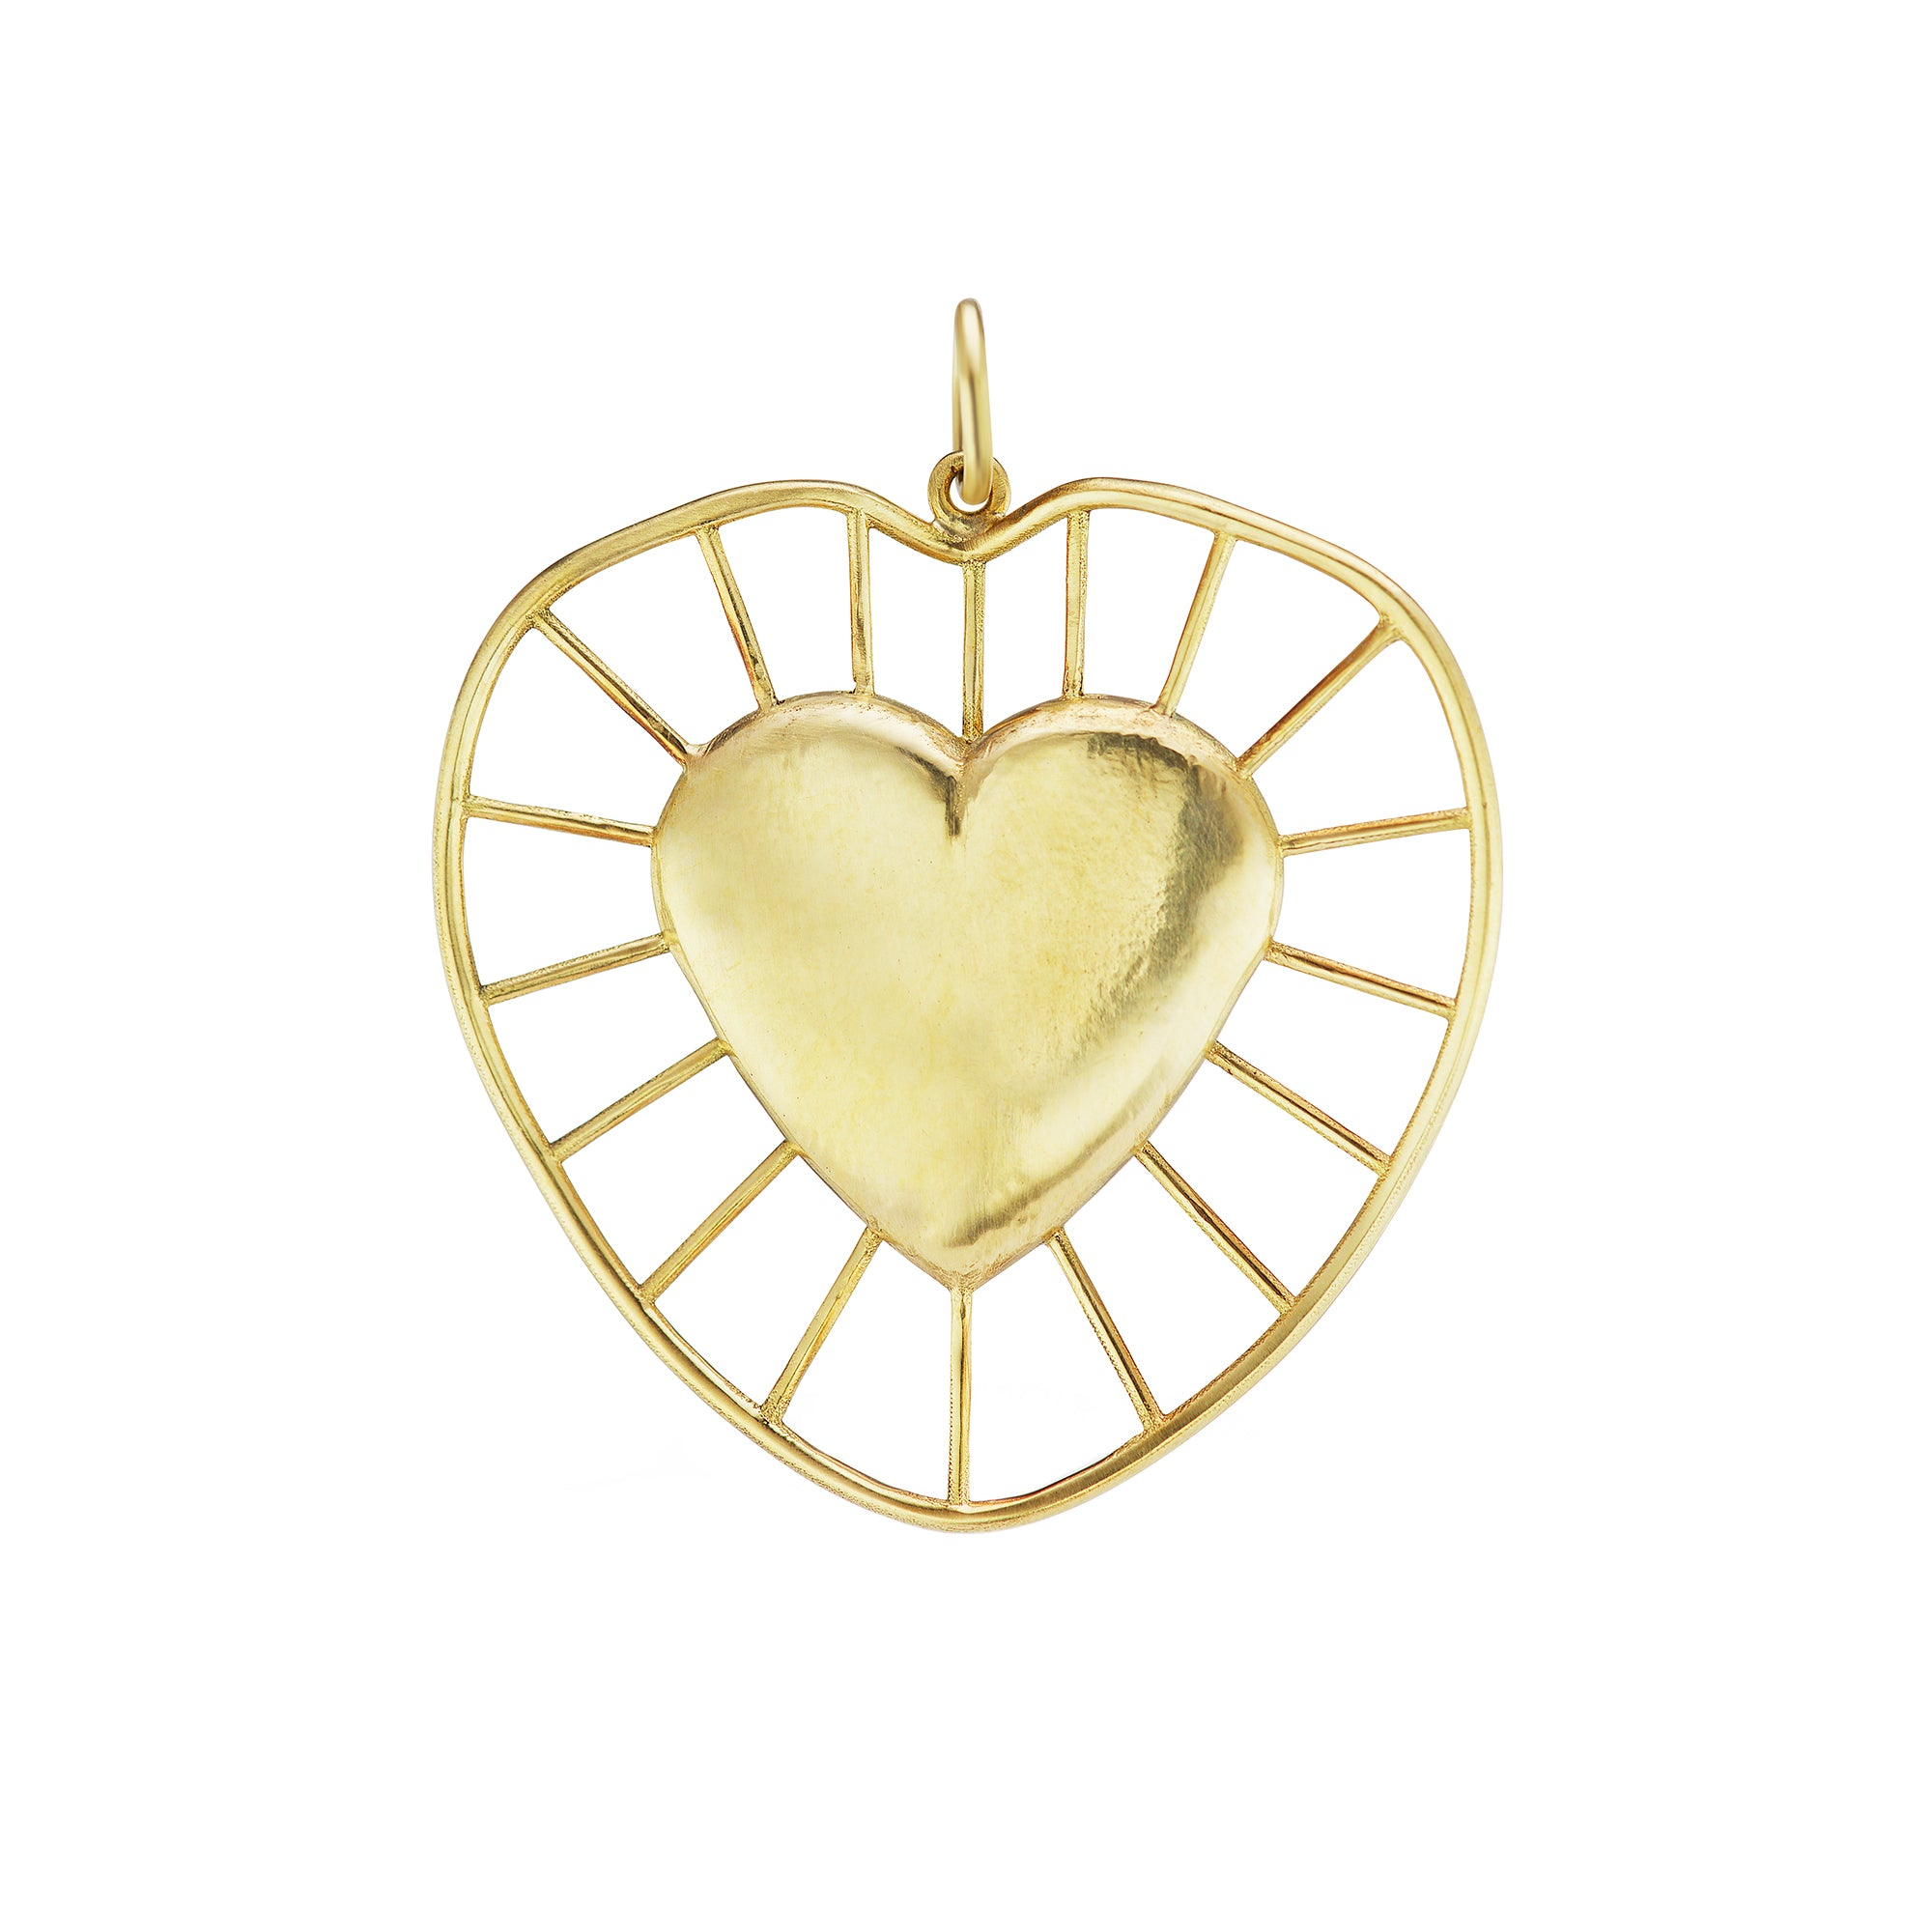 Radial Heart Charm - Christina Alexiou - Pendants & Charms | Broken English Jewelry